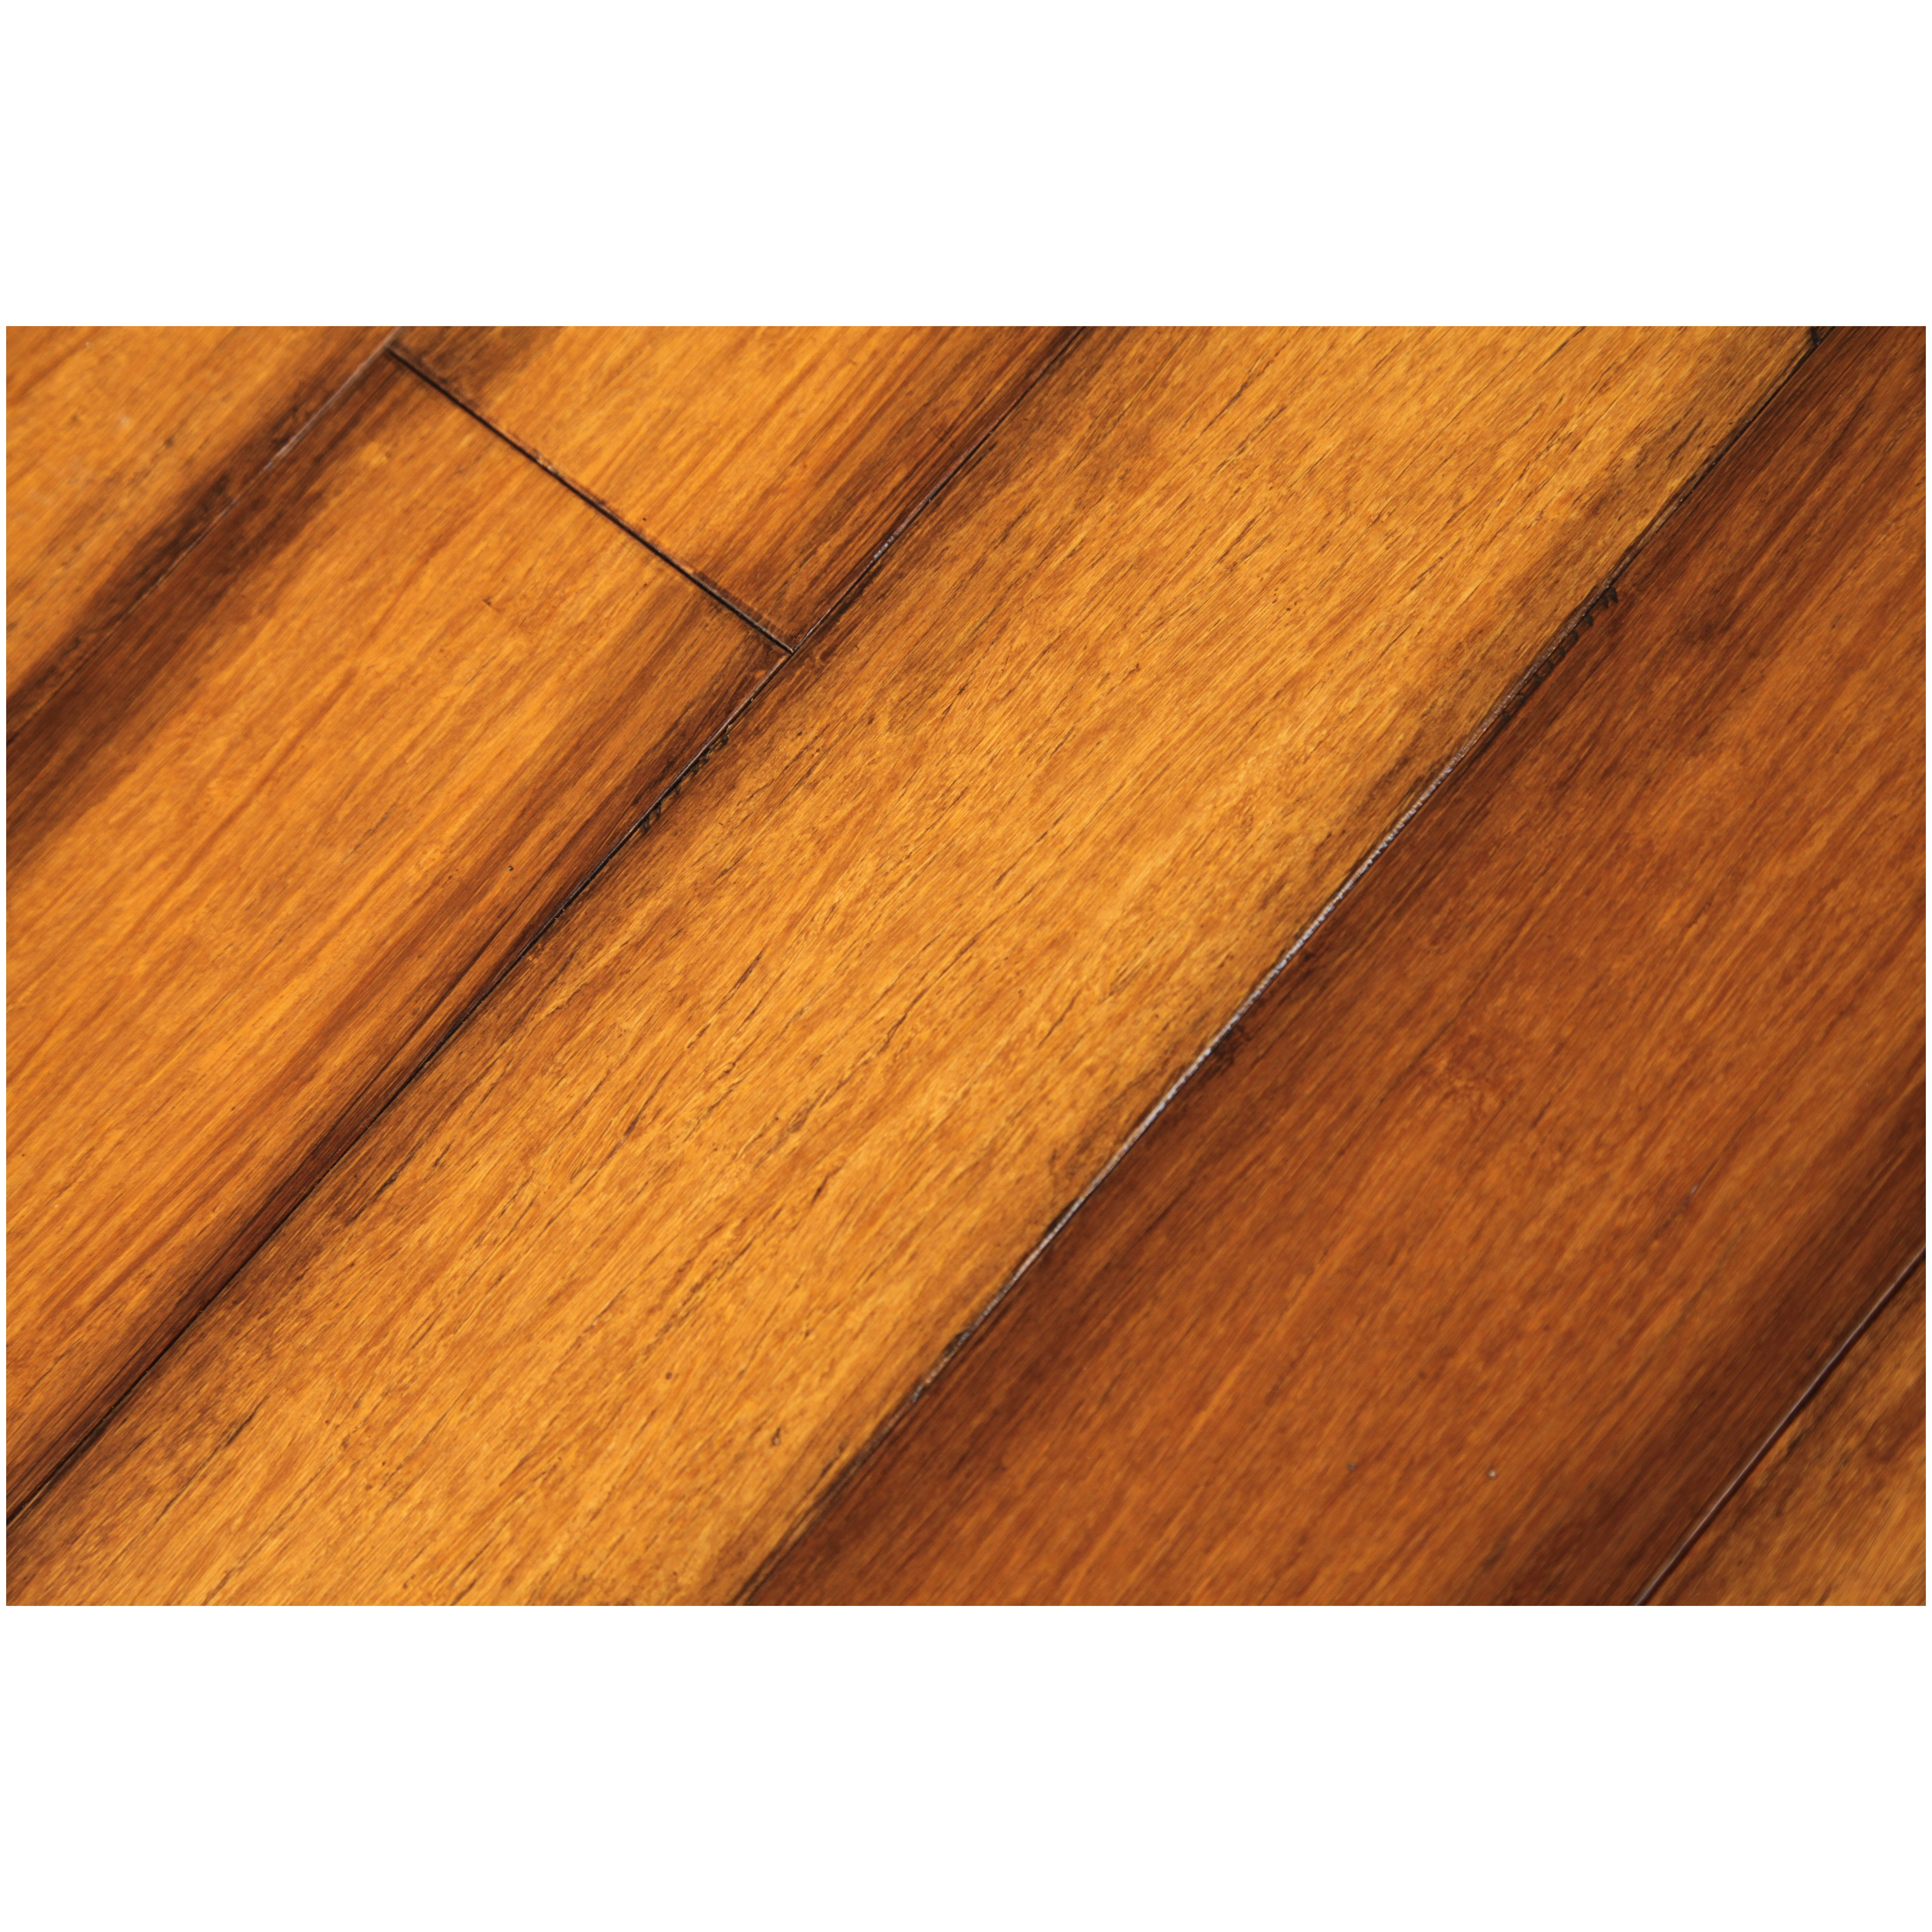 Easoon Usa 5 Quot Engineered Strand Woven Bamboo Hardwood